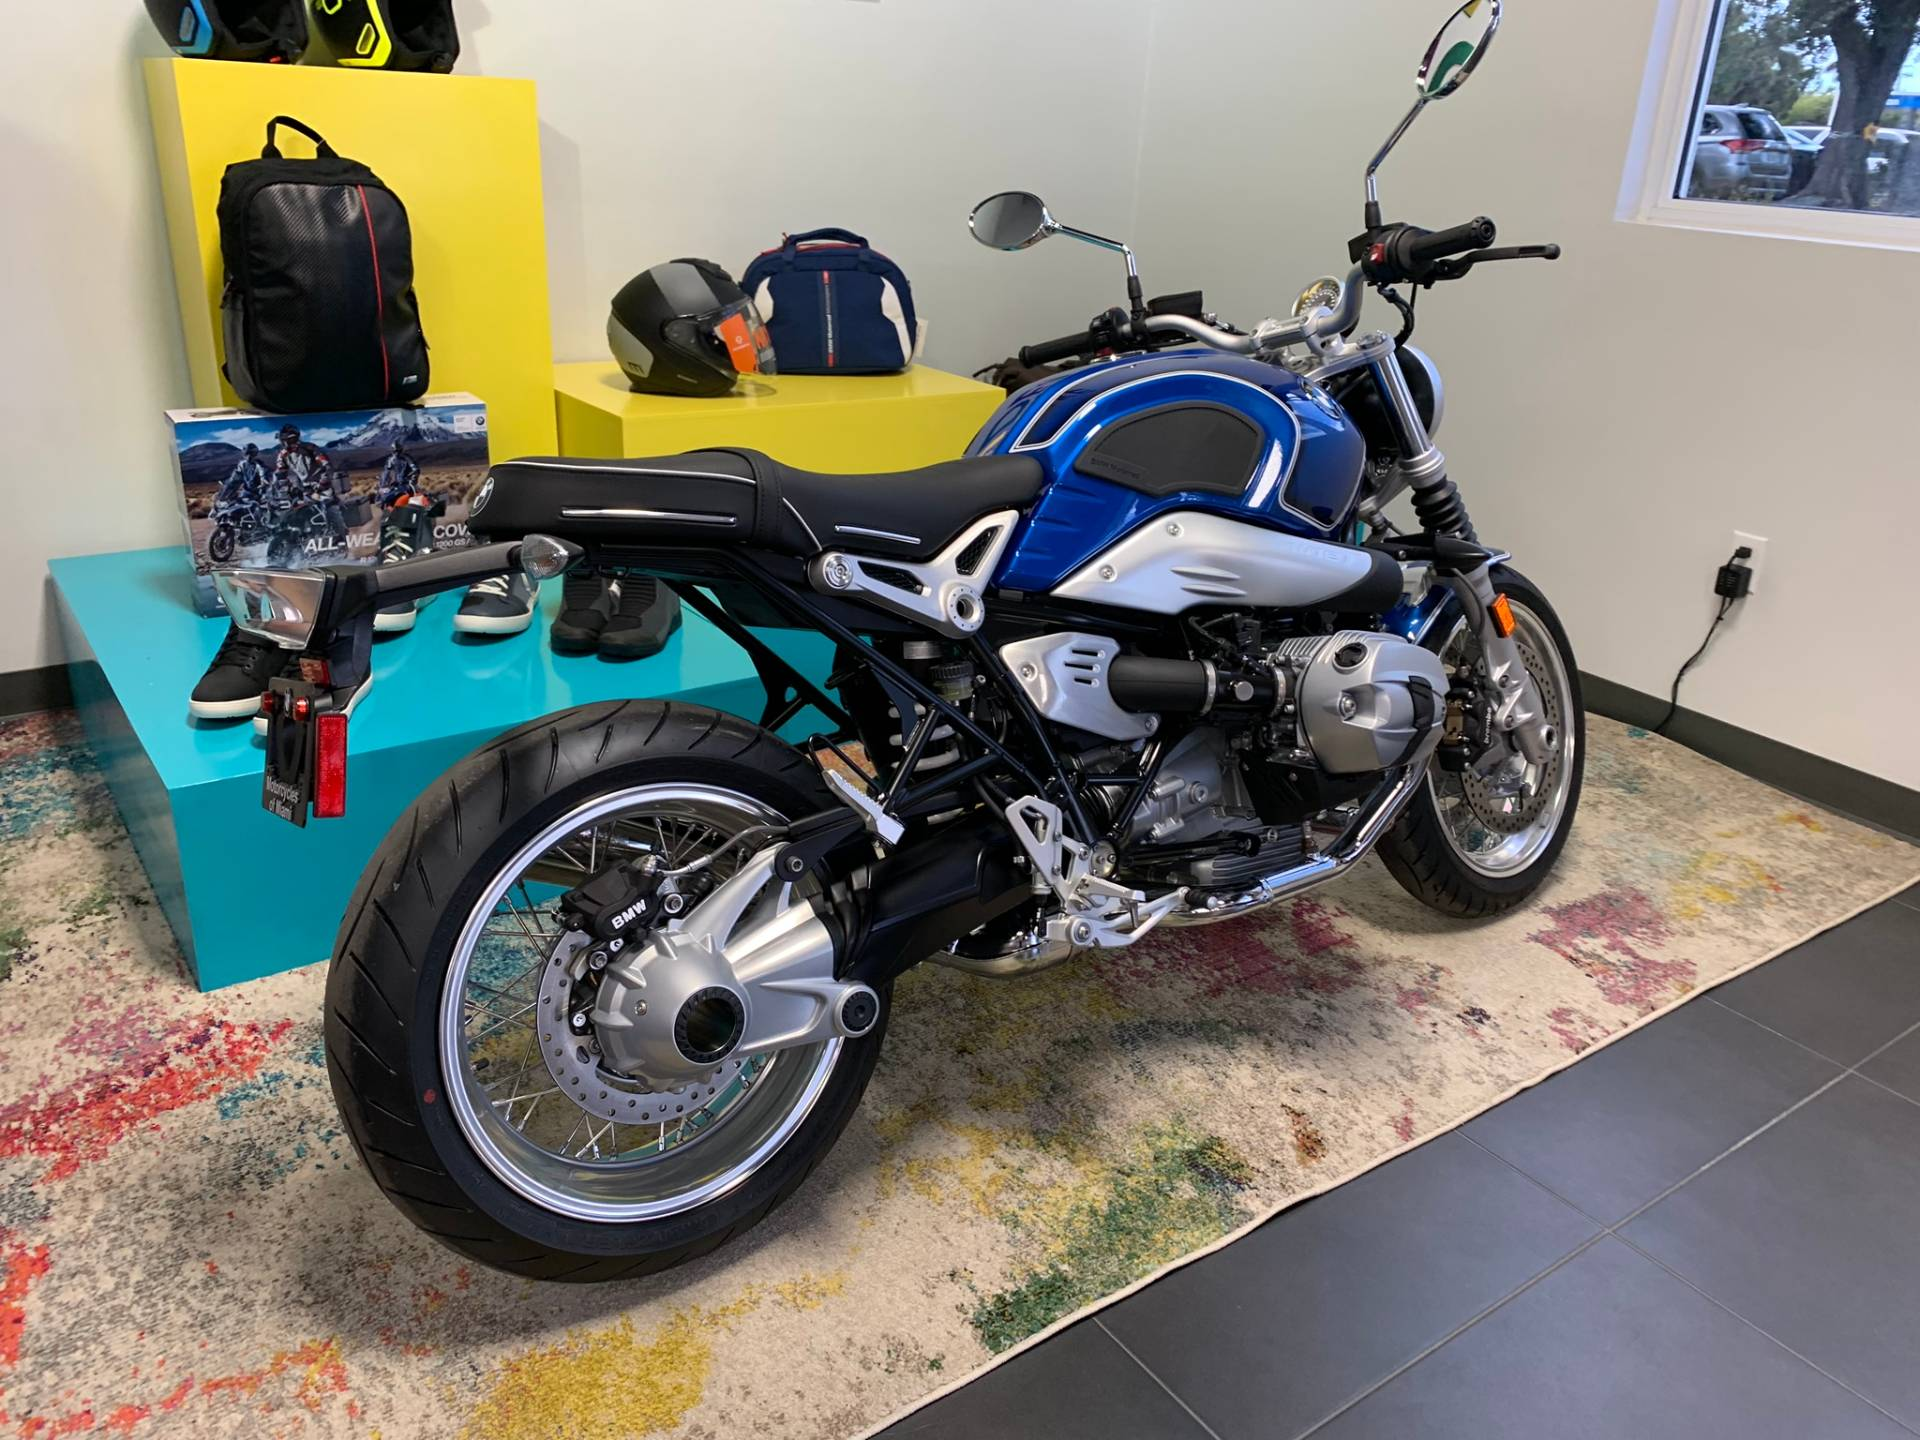 New 2020 2019 BMW R NineT for sale, BMW for sale, BMW Motorcycle Café Racer, new BMW Caffe, Cafe Racer, BMW. BMW Motorcycles of Miami, Motorcycles of Miami, Motorcycles Miami, New Motorcycles, Used Motorcycles, pre-owned. #BMWMotorcyclesOfMiami #MotorcyclesOfMiami. - Photo 10